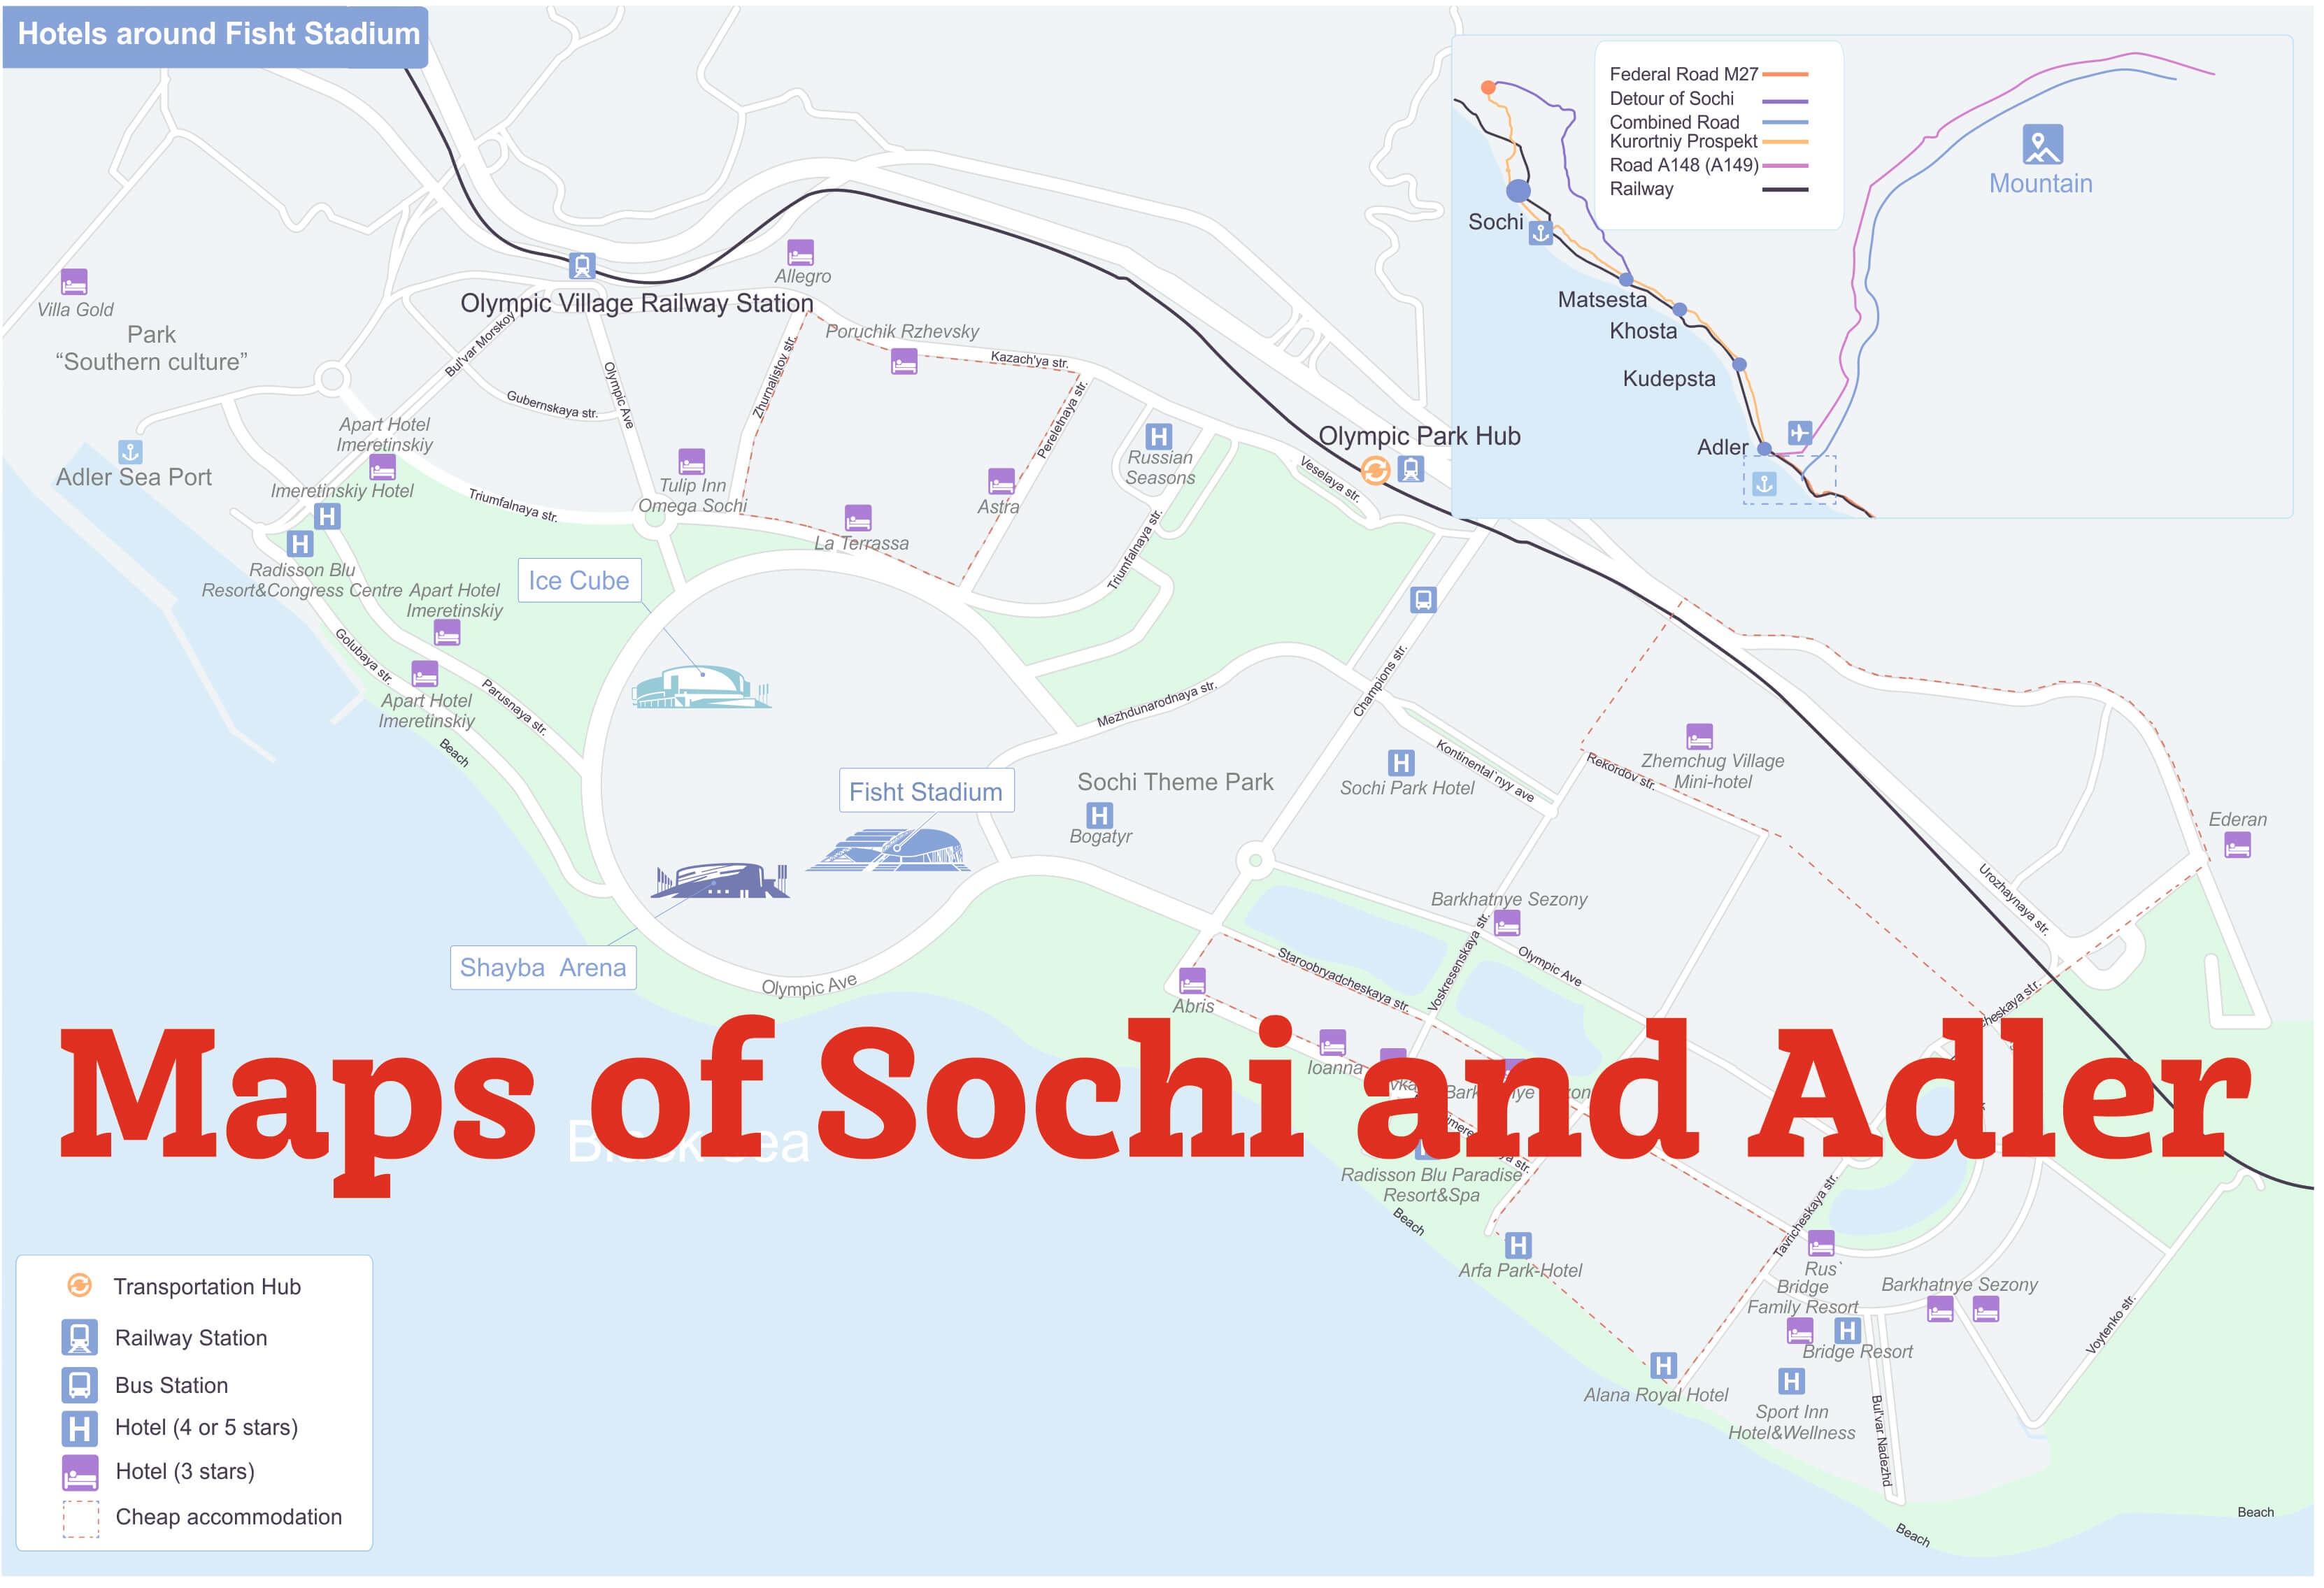 Maps of Sochi and Adler